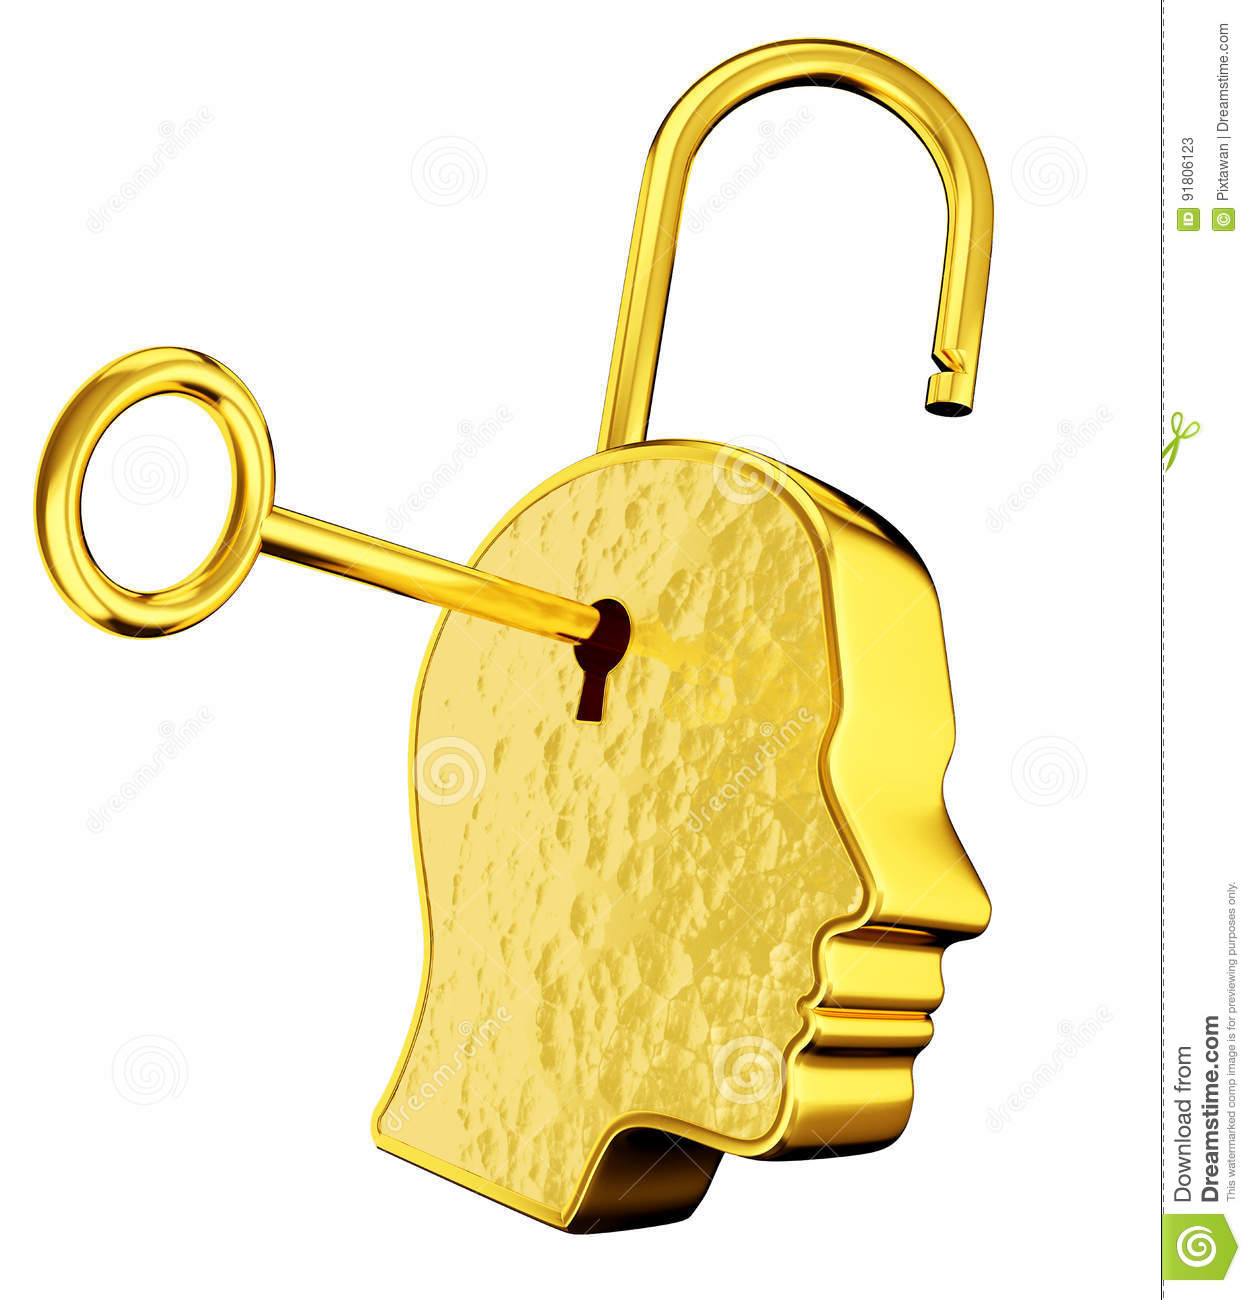 gold keyhole clipart - 800×896